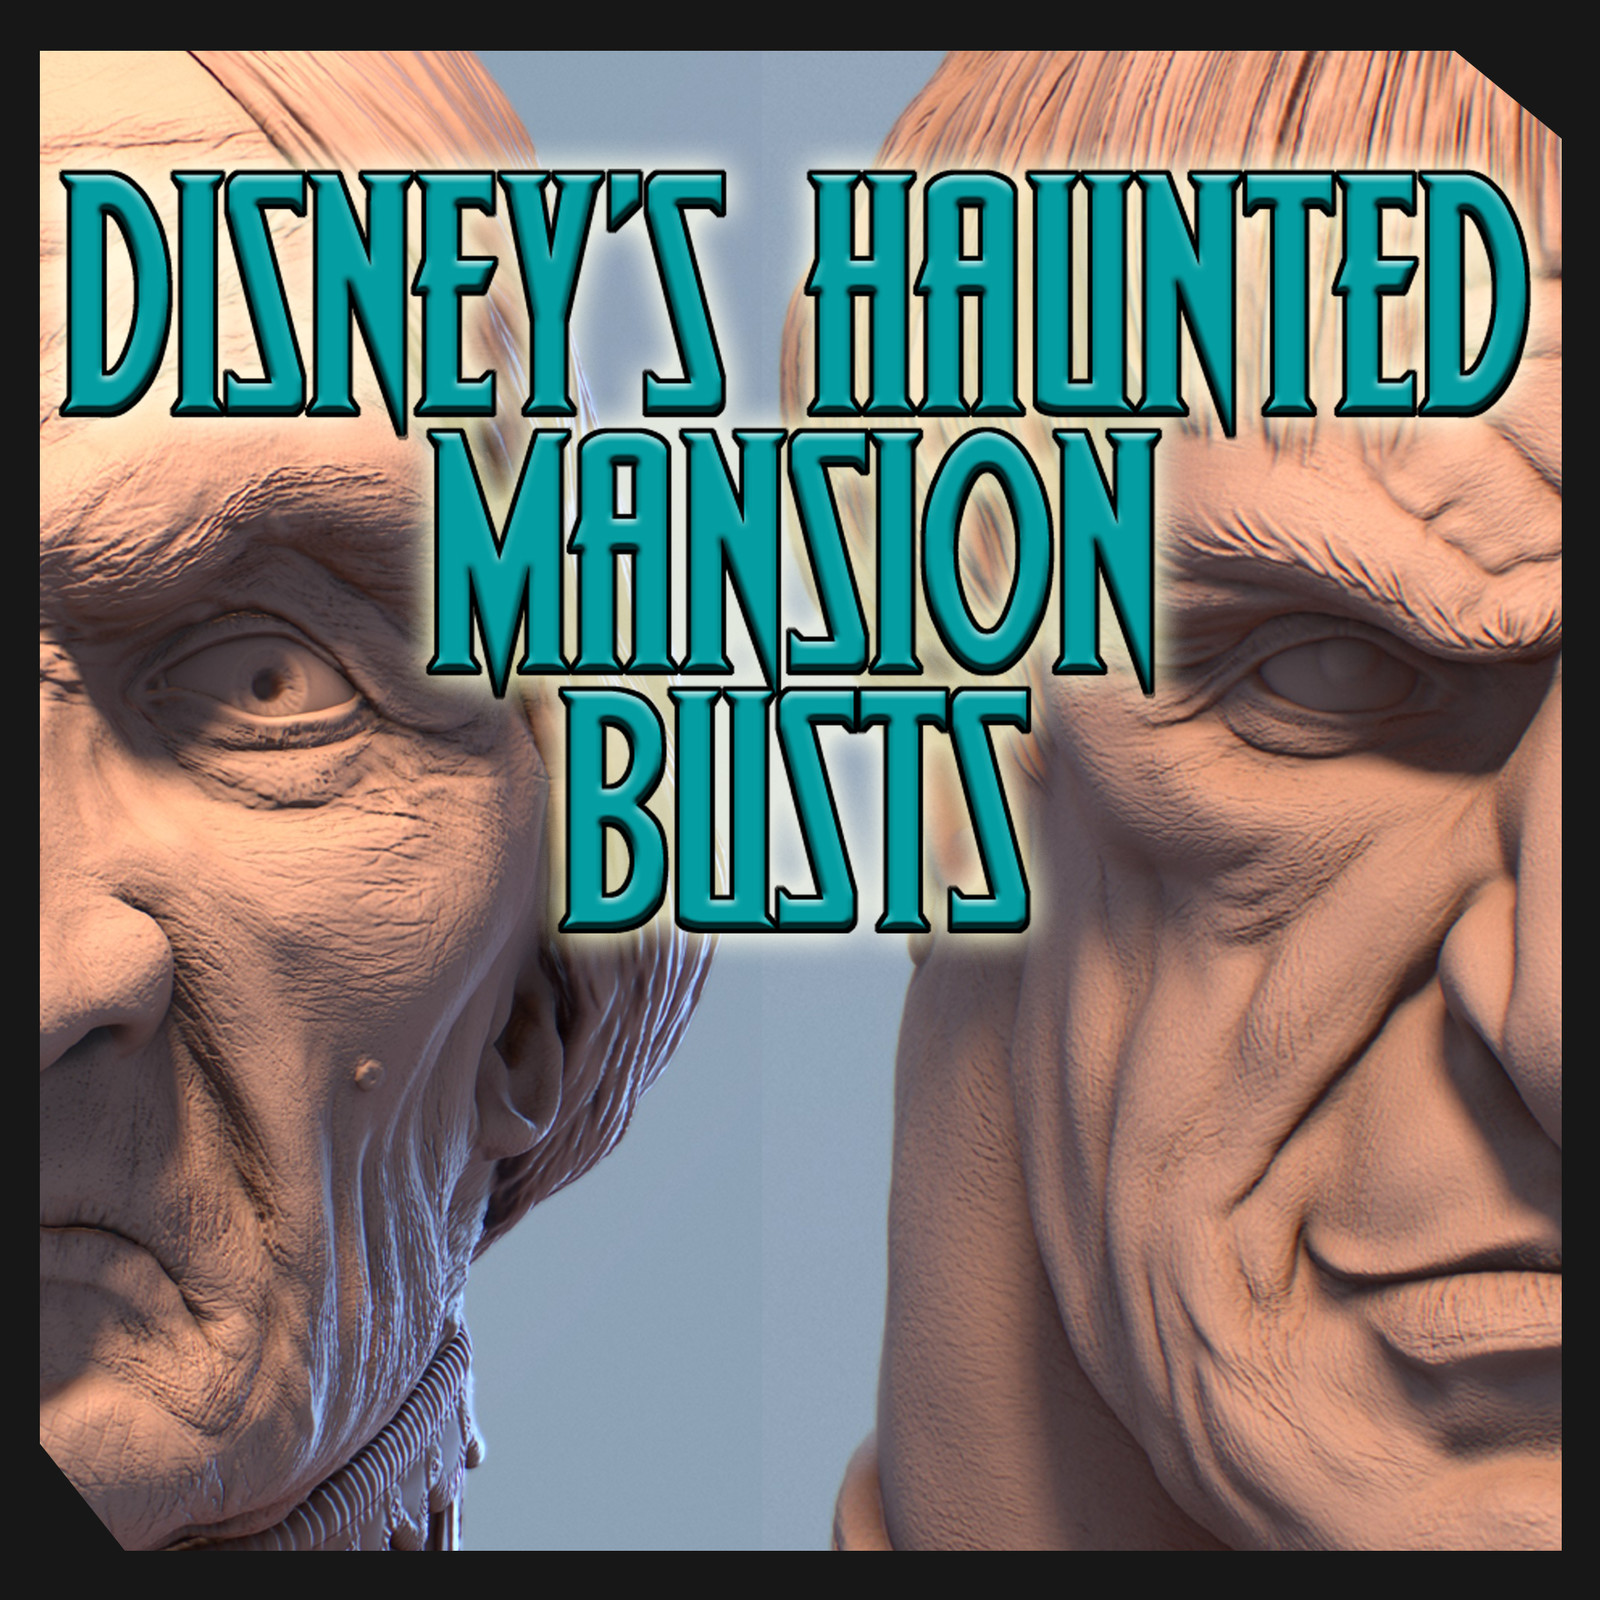 Disney's Haunted Mansion Busts Fan Art By Sergio Mengual